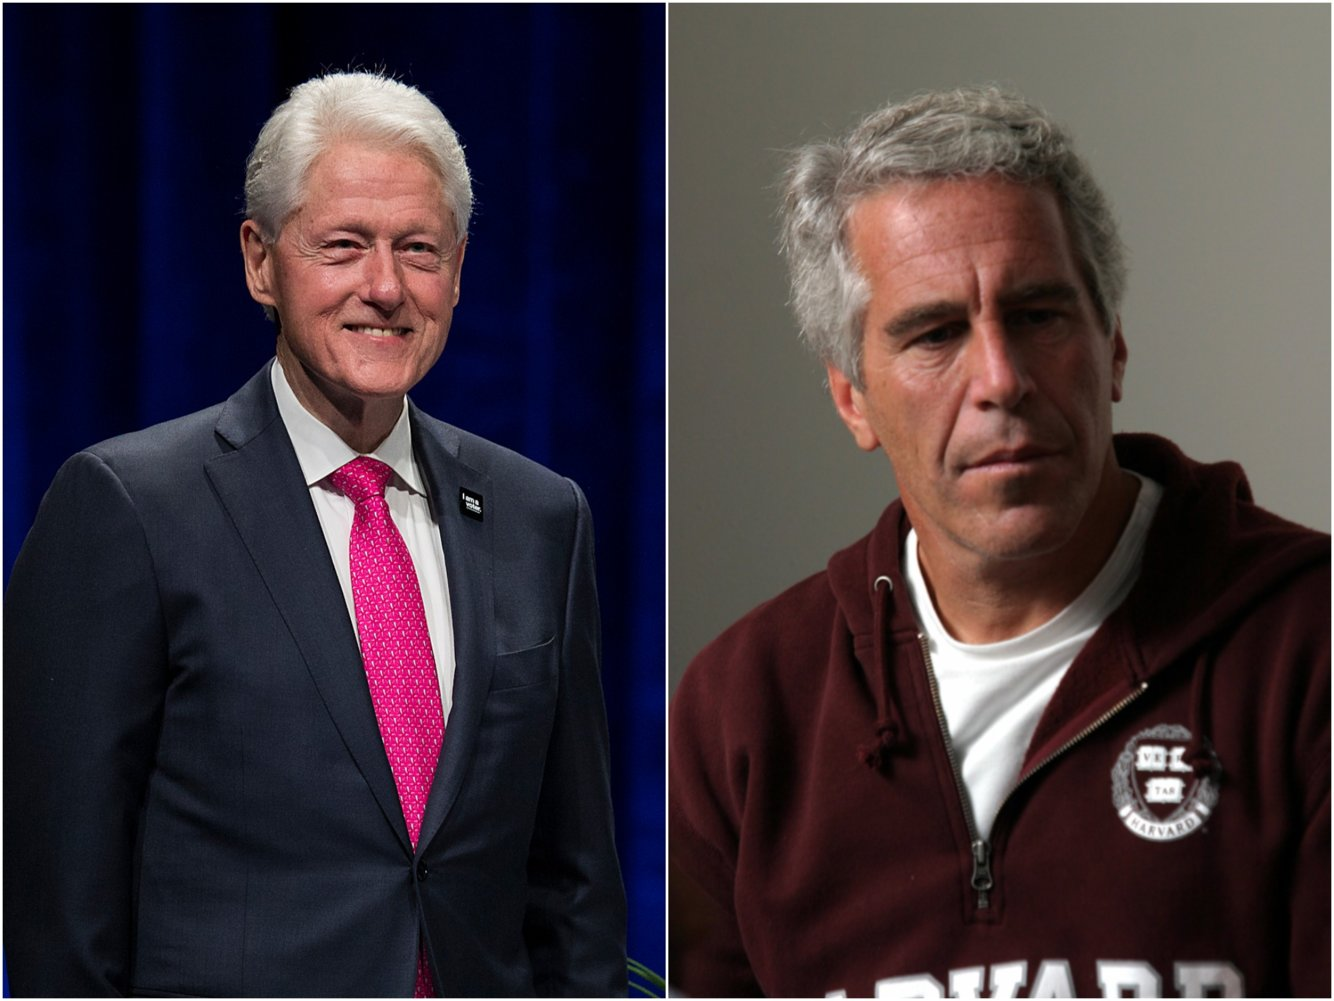 Bill Clinton said he 'knows nothing' about charges against Jeffrey Epstein